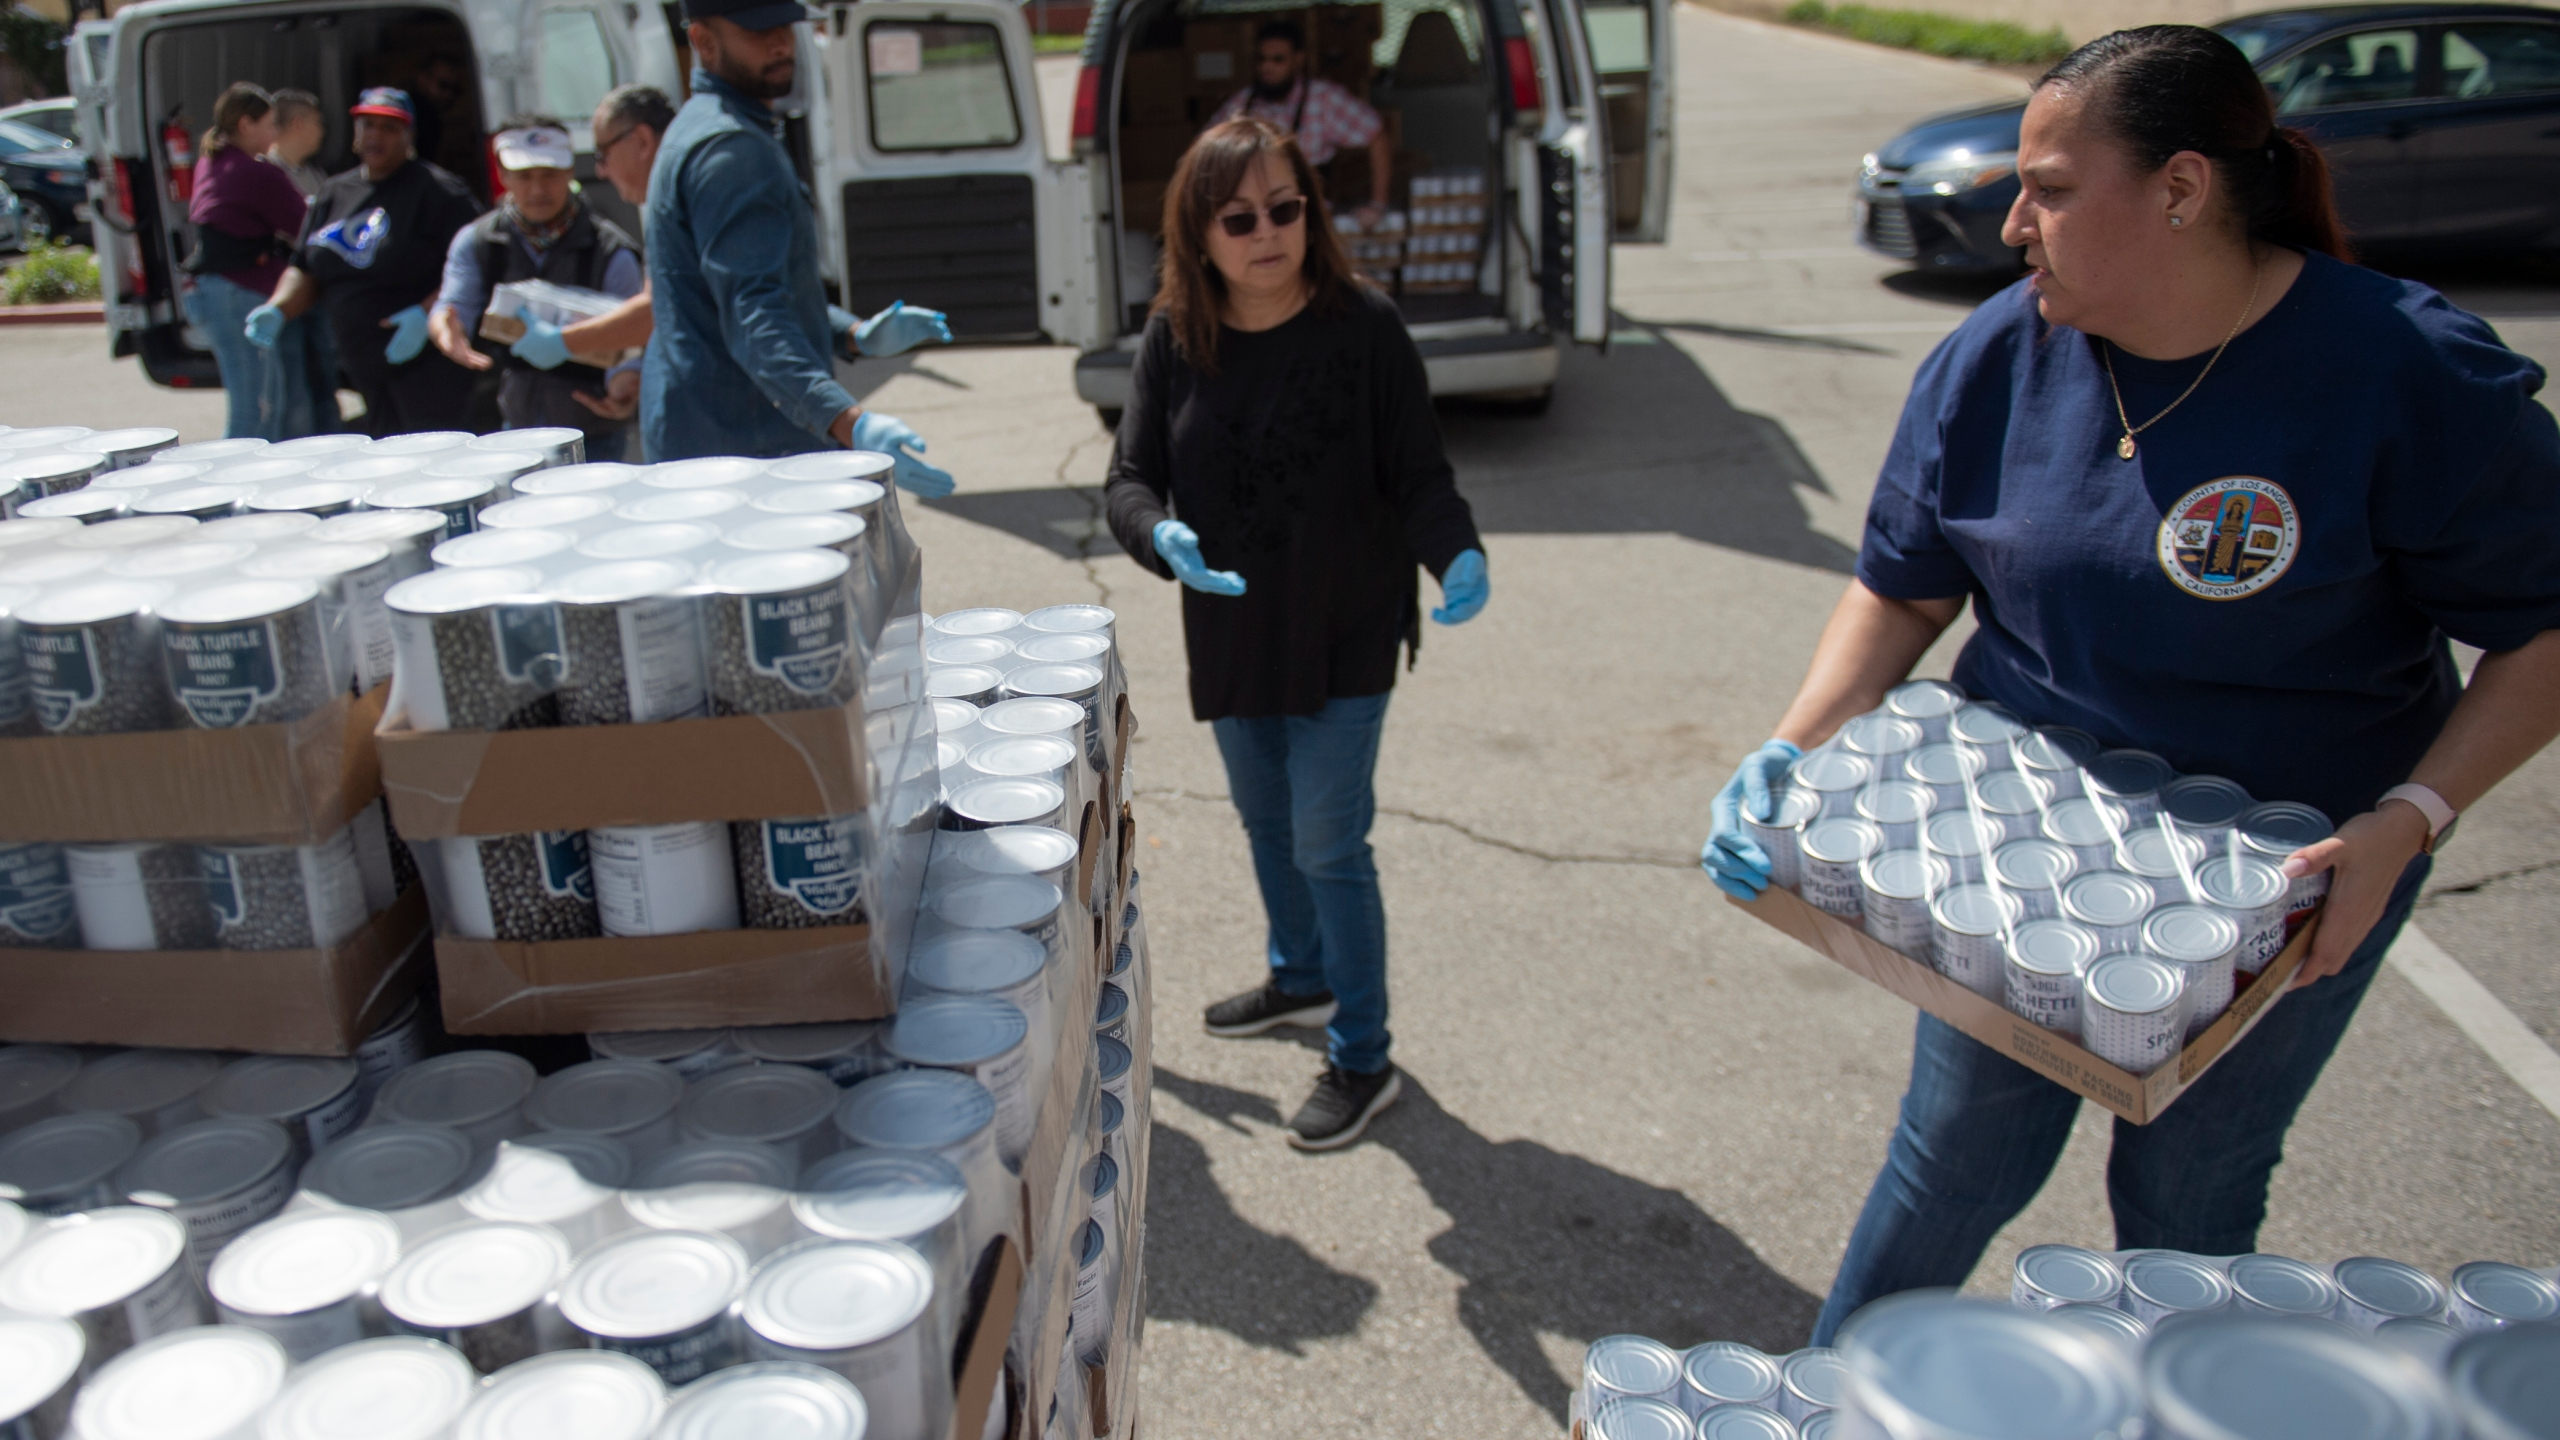 Crews with Los Angeles County handle food to be delivered to those in need during the COVID-19 outbreak in this photo posted on the county's Flickr page on March 23, 2020.